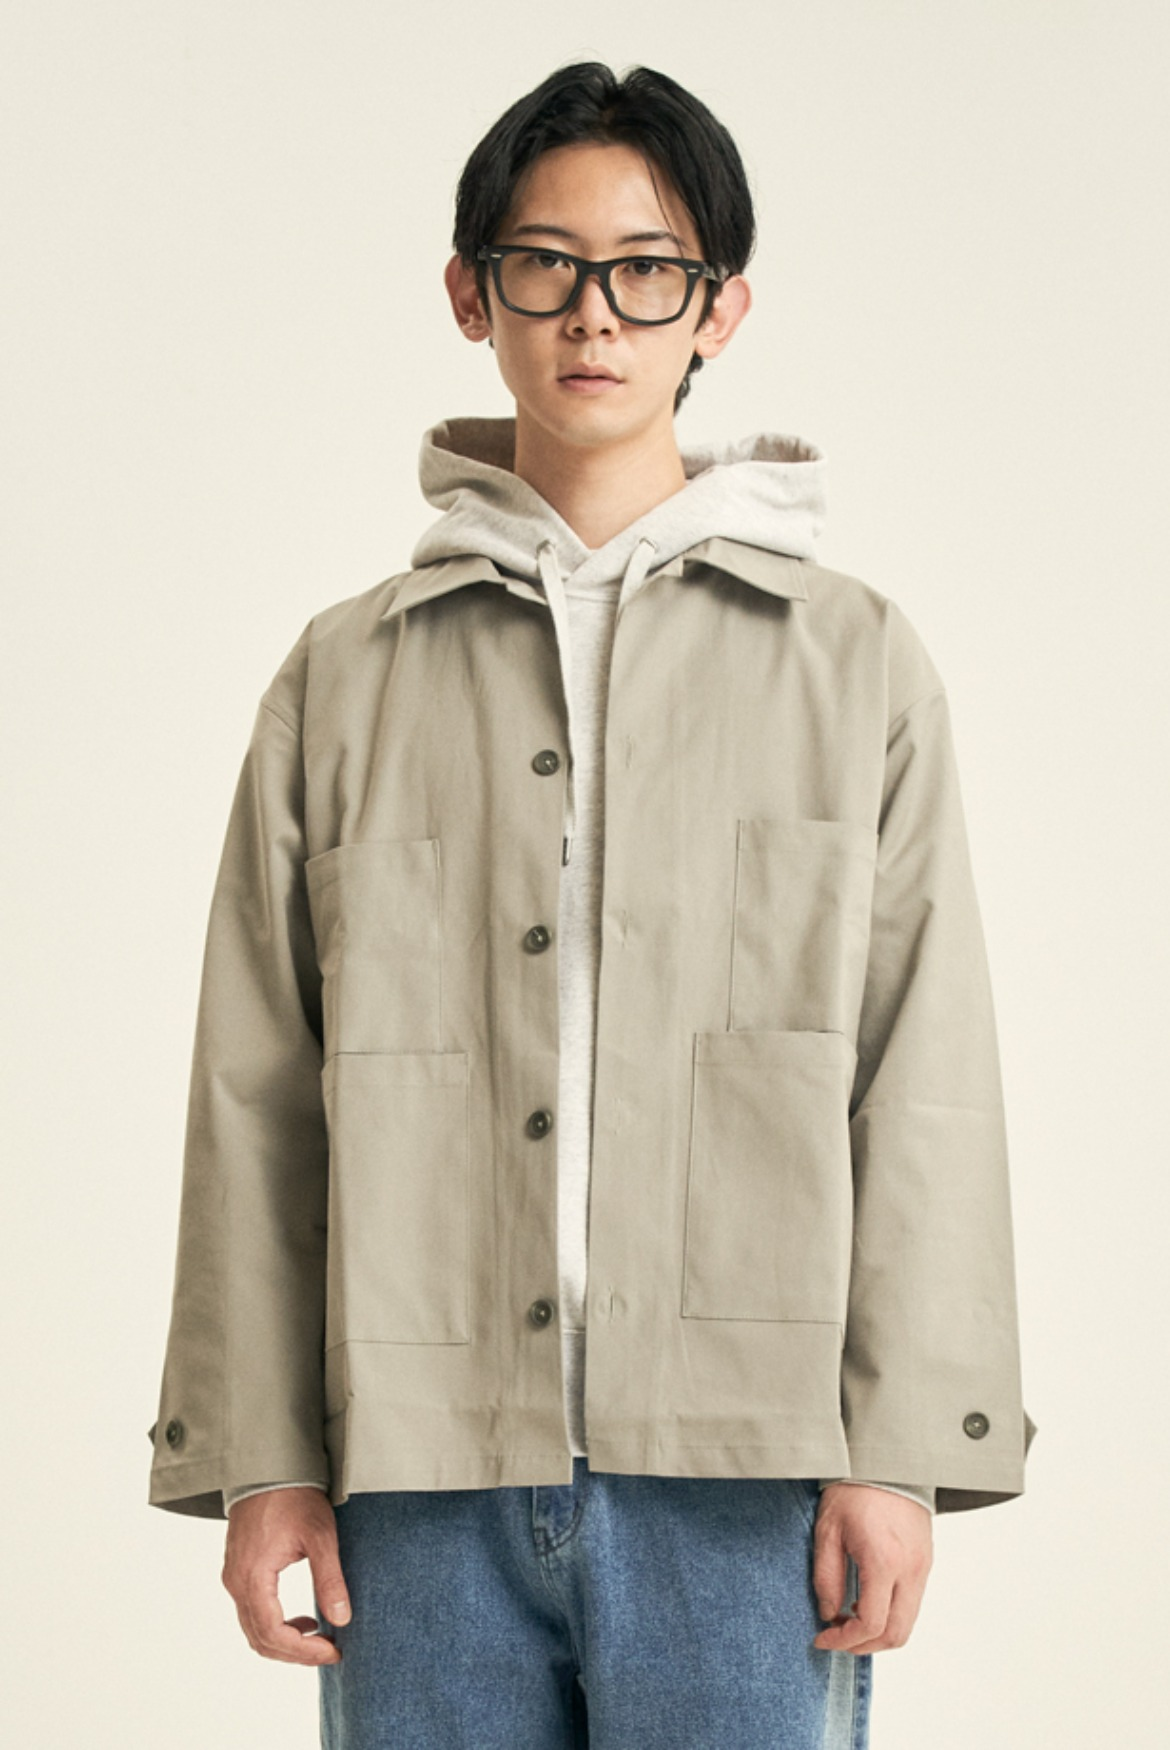 Luster Shirts Jacket [Light Grey]